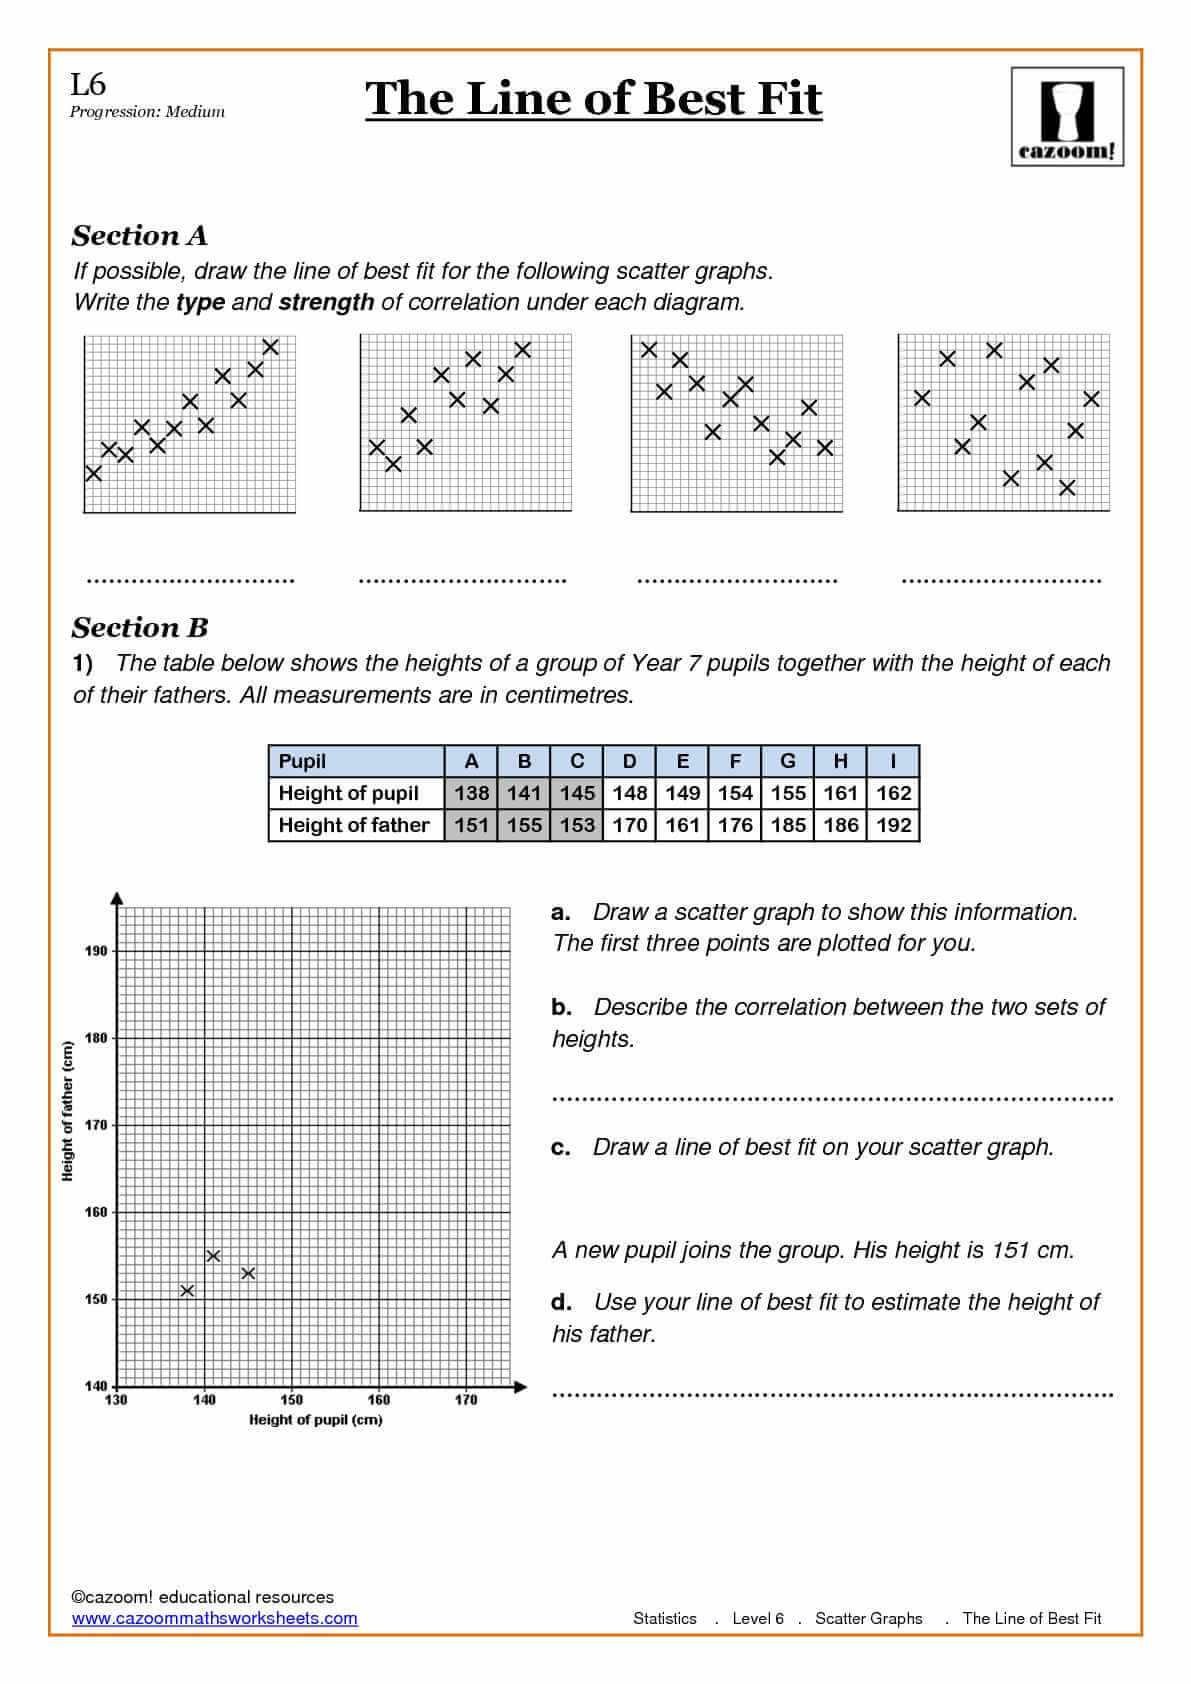 math worksheet : statistics worksheets  cazoom maths worksheets : Math Worksheets Ks3